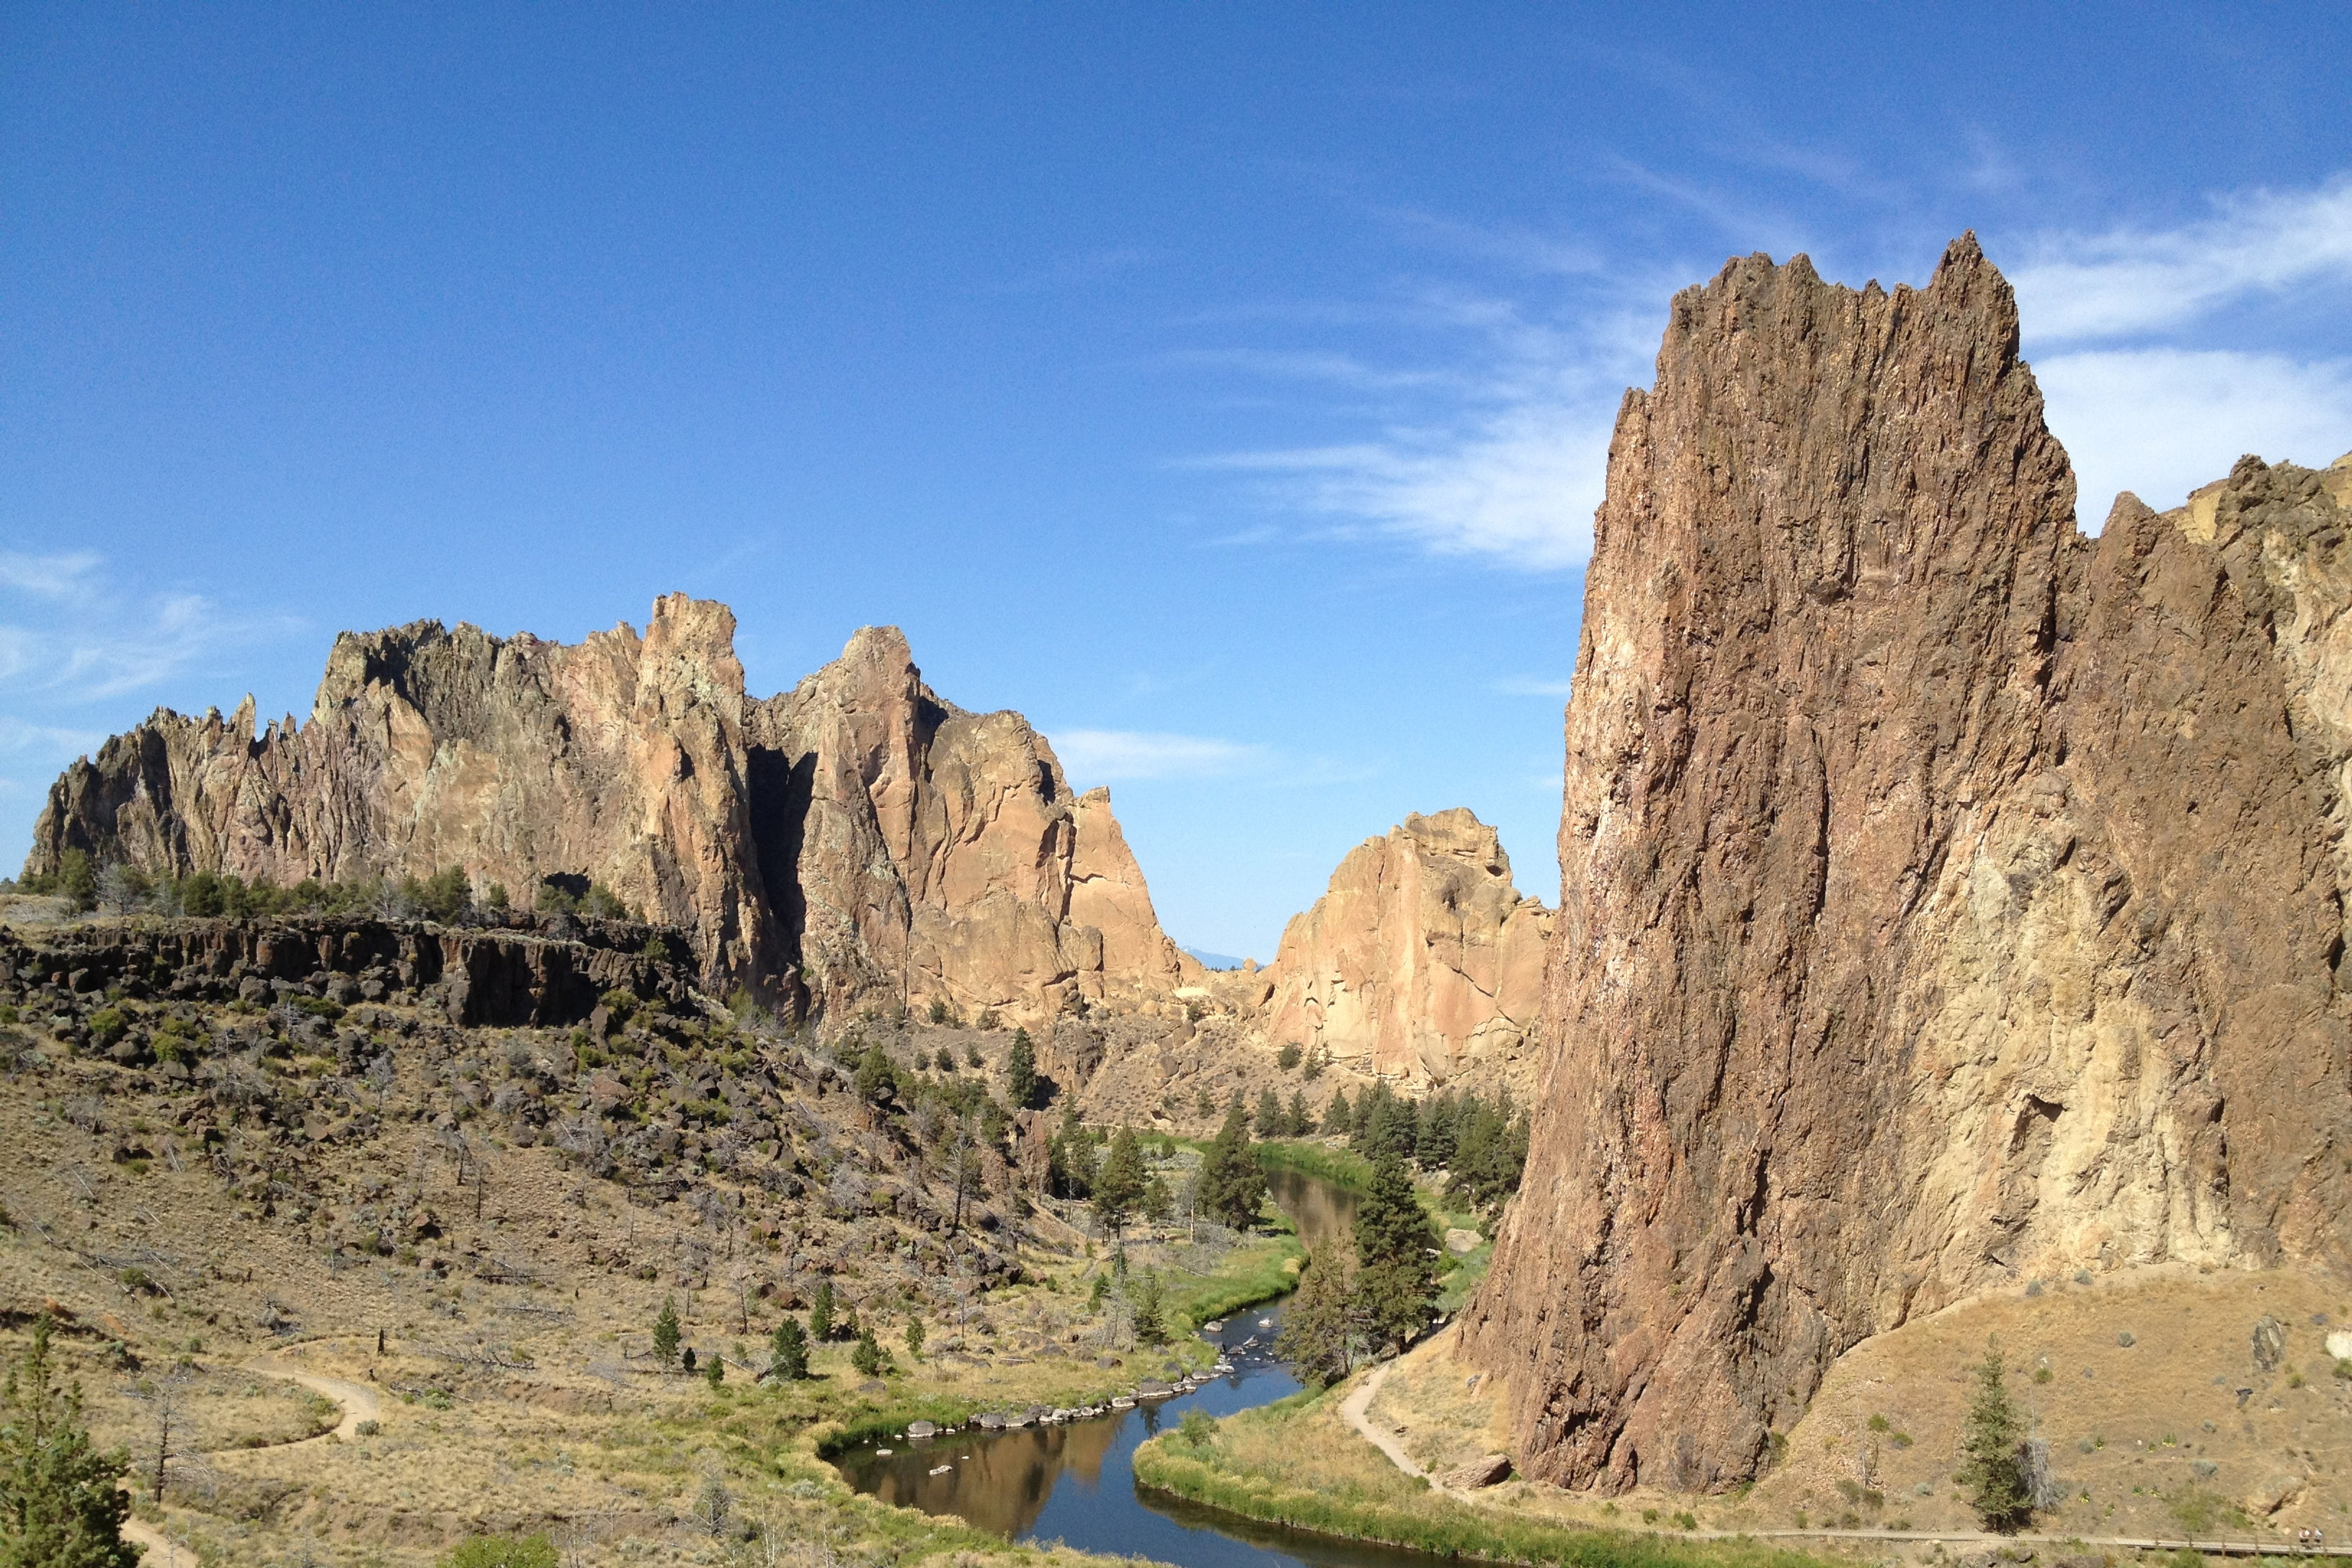 Smith rock state park by carley luehrs  8272127049  fkmf9h